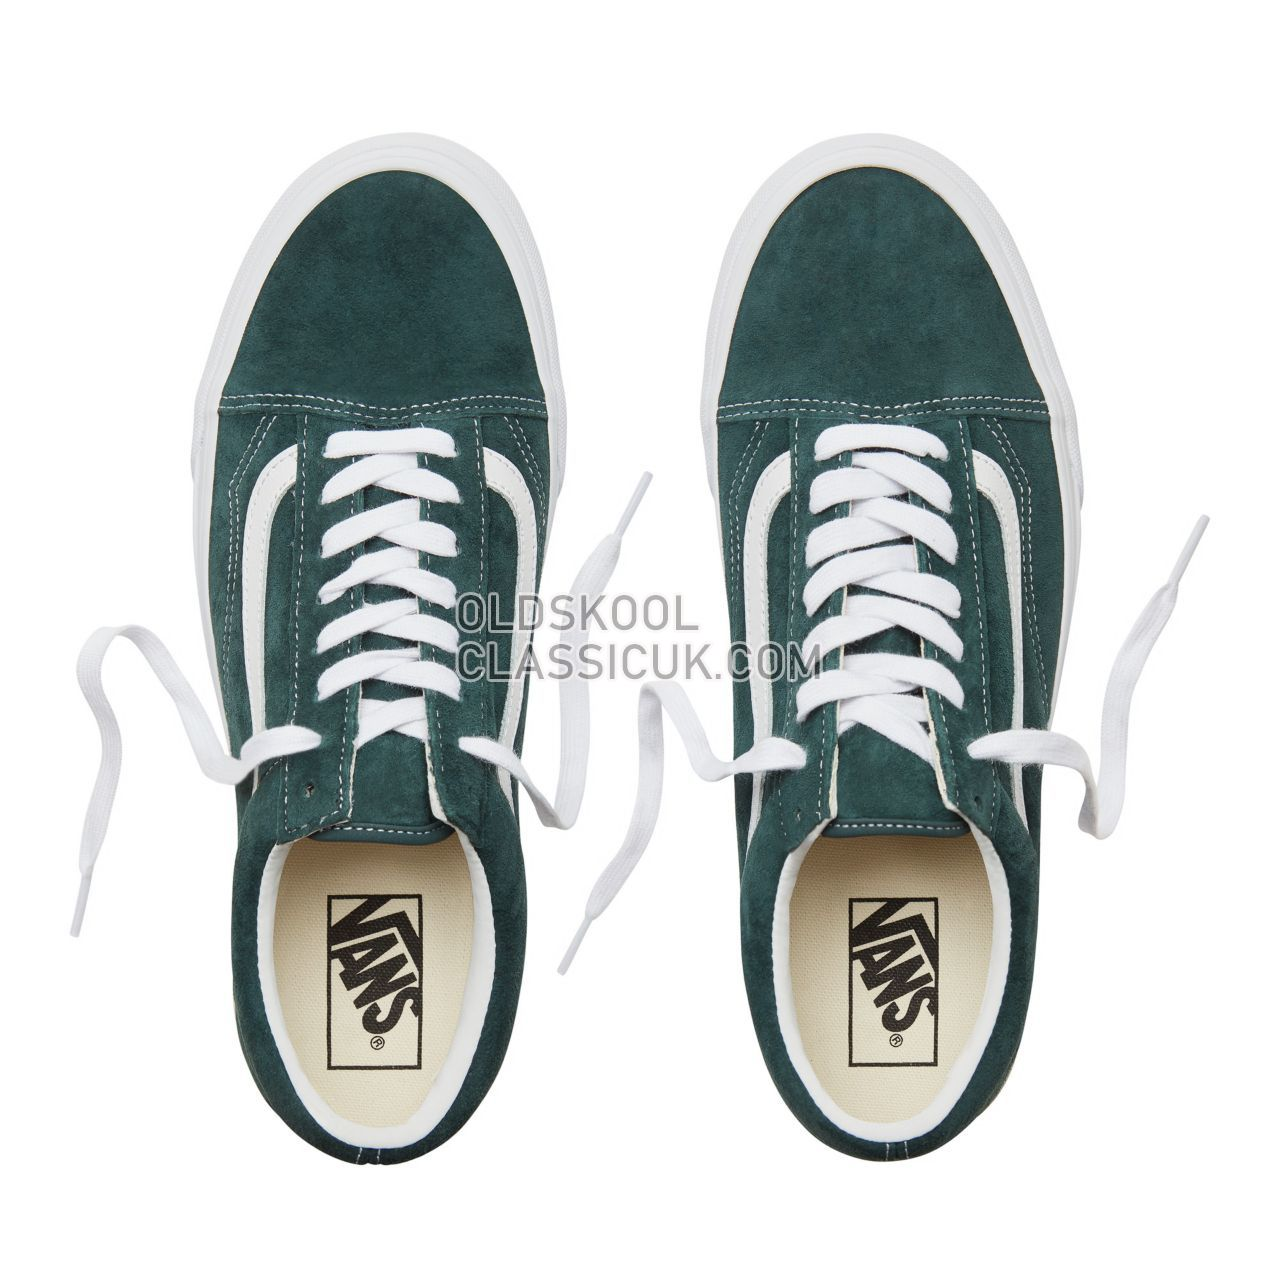 Vans Suede Old Skool Sneakers Mens Womens Unisex (Pig Suede) Darkest Spruce/True White VA38G1U5J Shoes